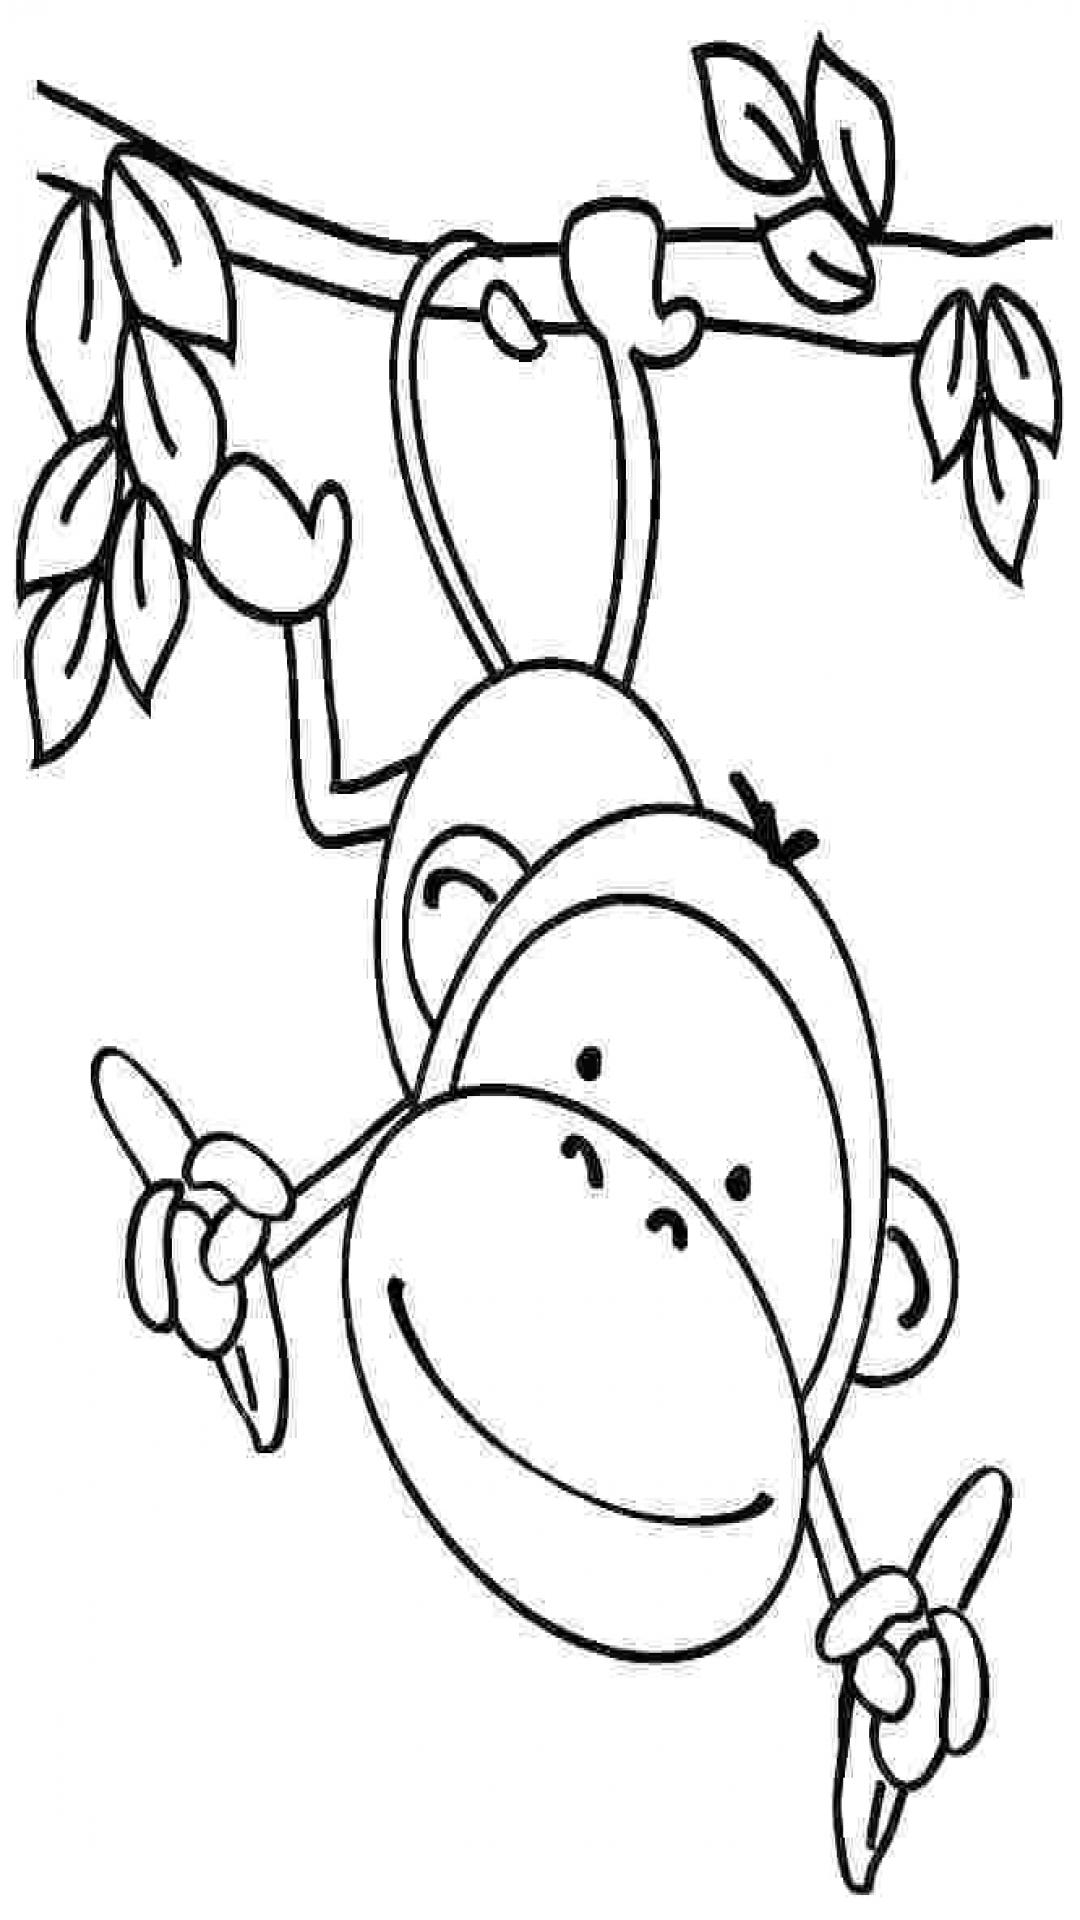 Sea Monster Coloring Pages Coloring Pages Toddler Coloring Scarce Printable Stunning In With